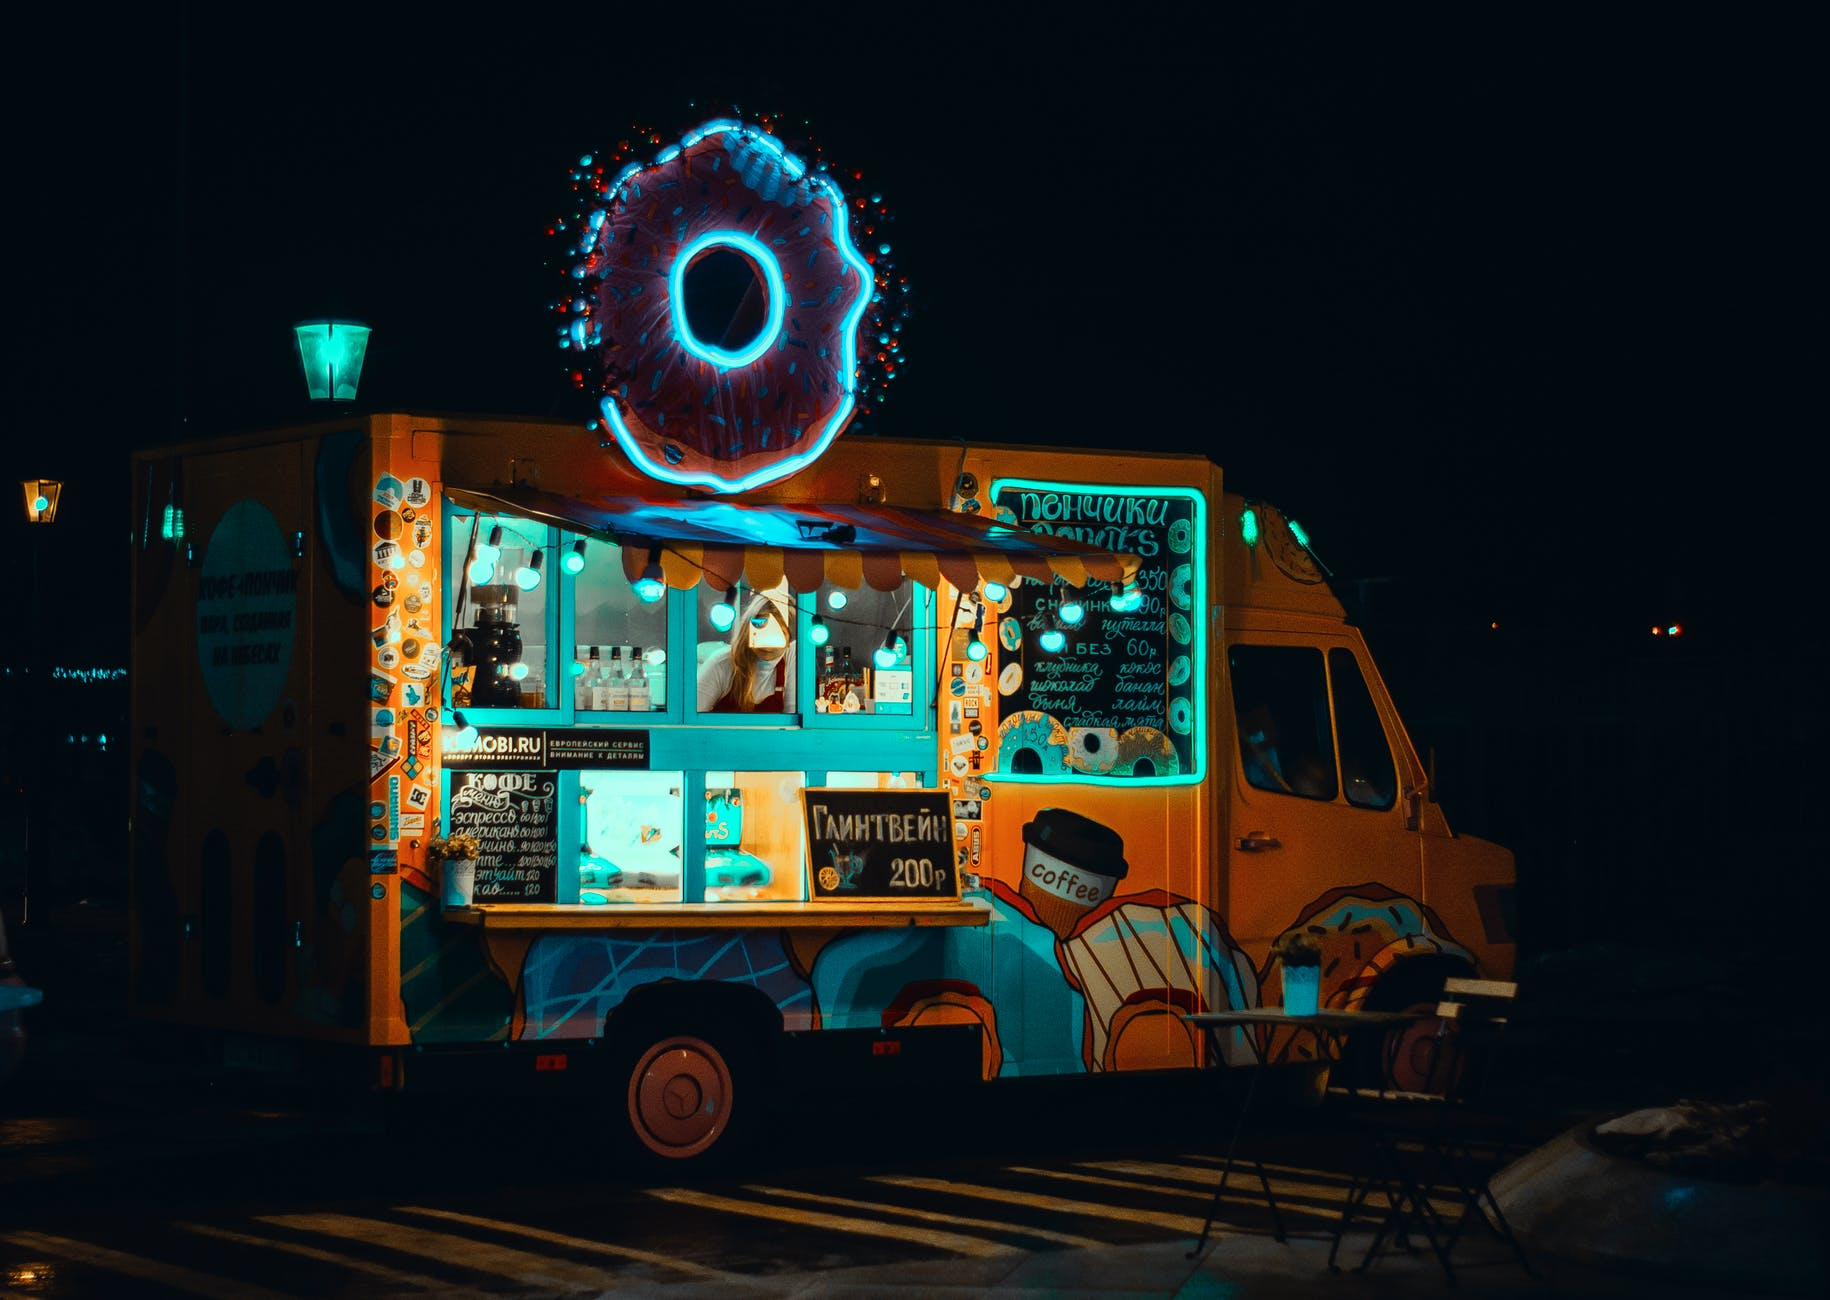 Eric Dalius Miami Discusses Why You Should Start a Food Truck Business, not a Restaurant in the City